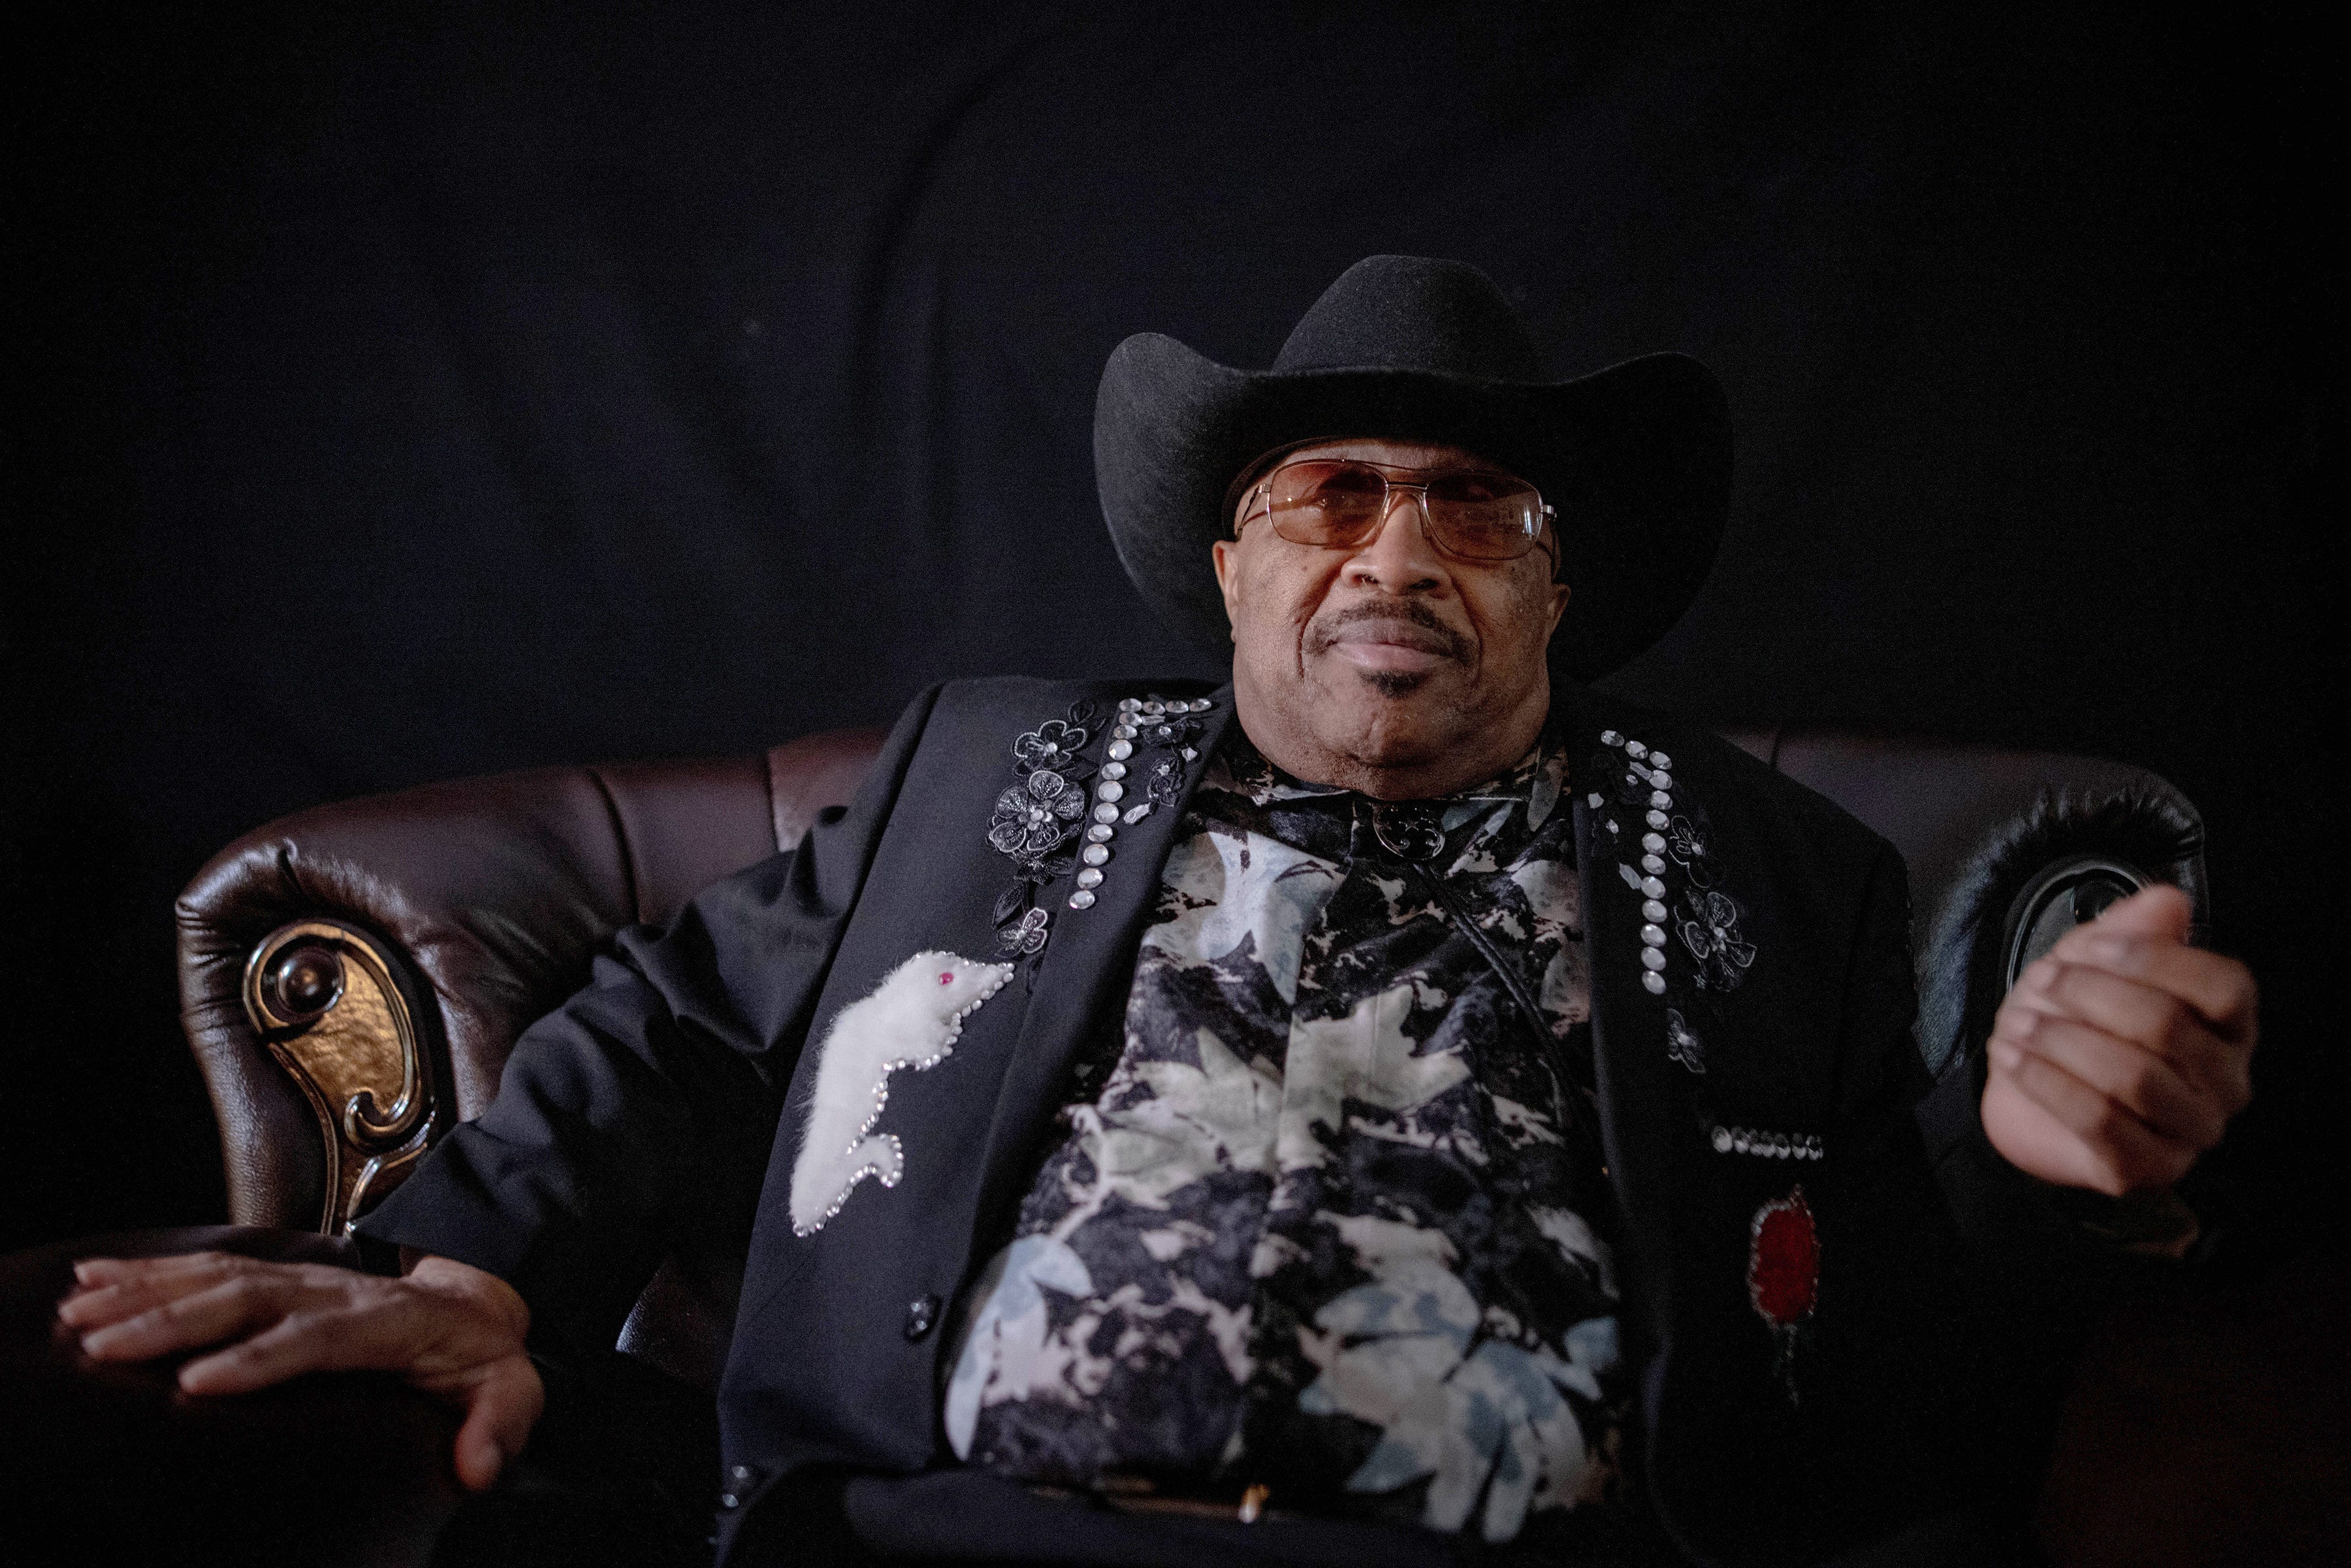 Swamp Dogg sits in his living room at his home in Northridge, Calif. on Thursday, October 29.